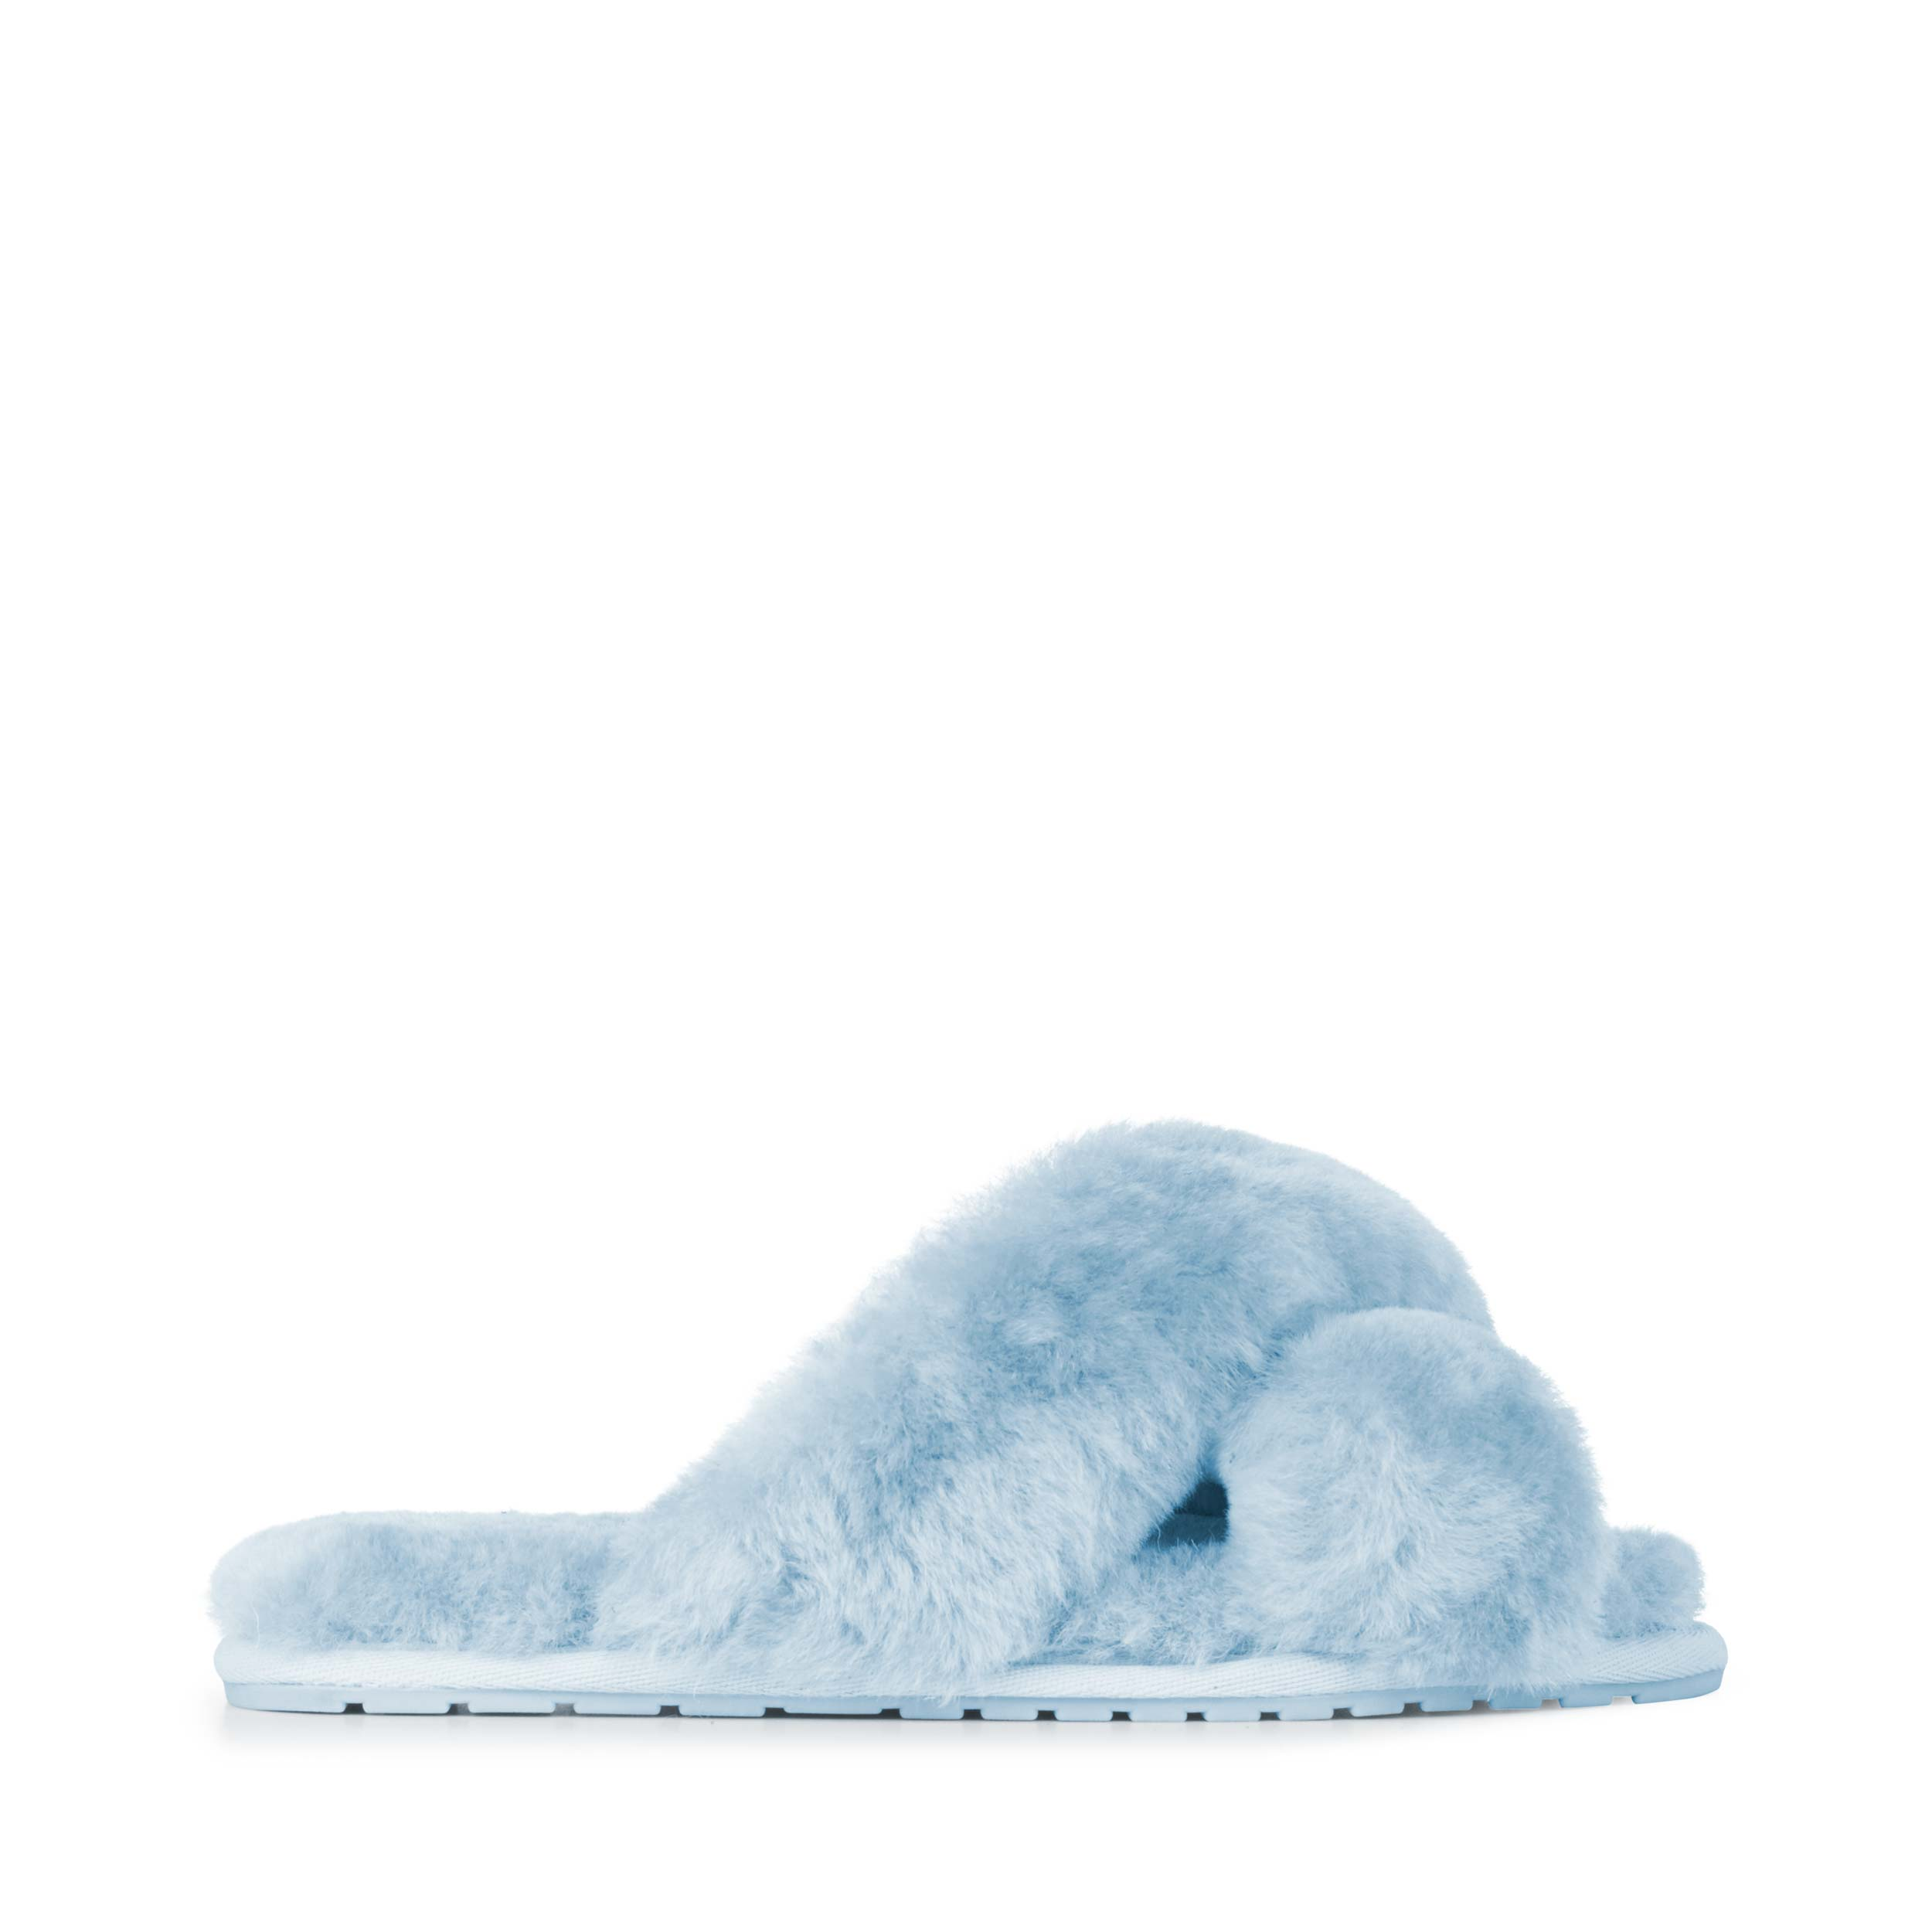 Emu Australia Mayberry Slippers in Baby Blue